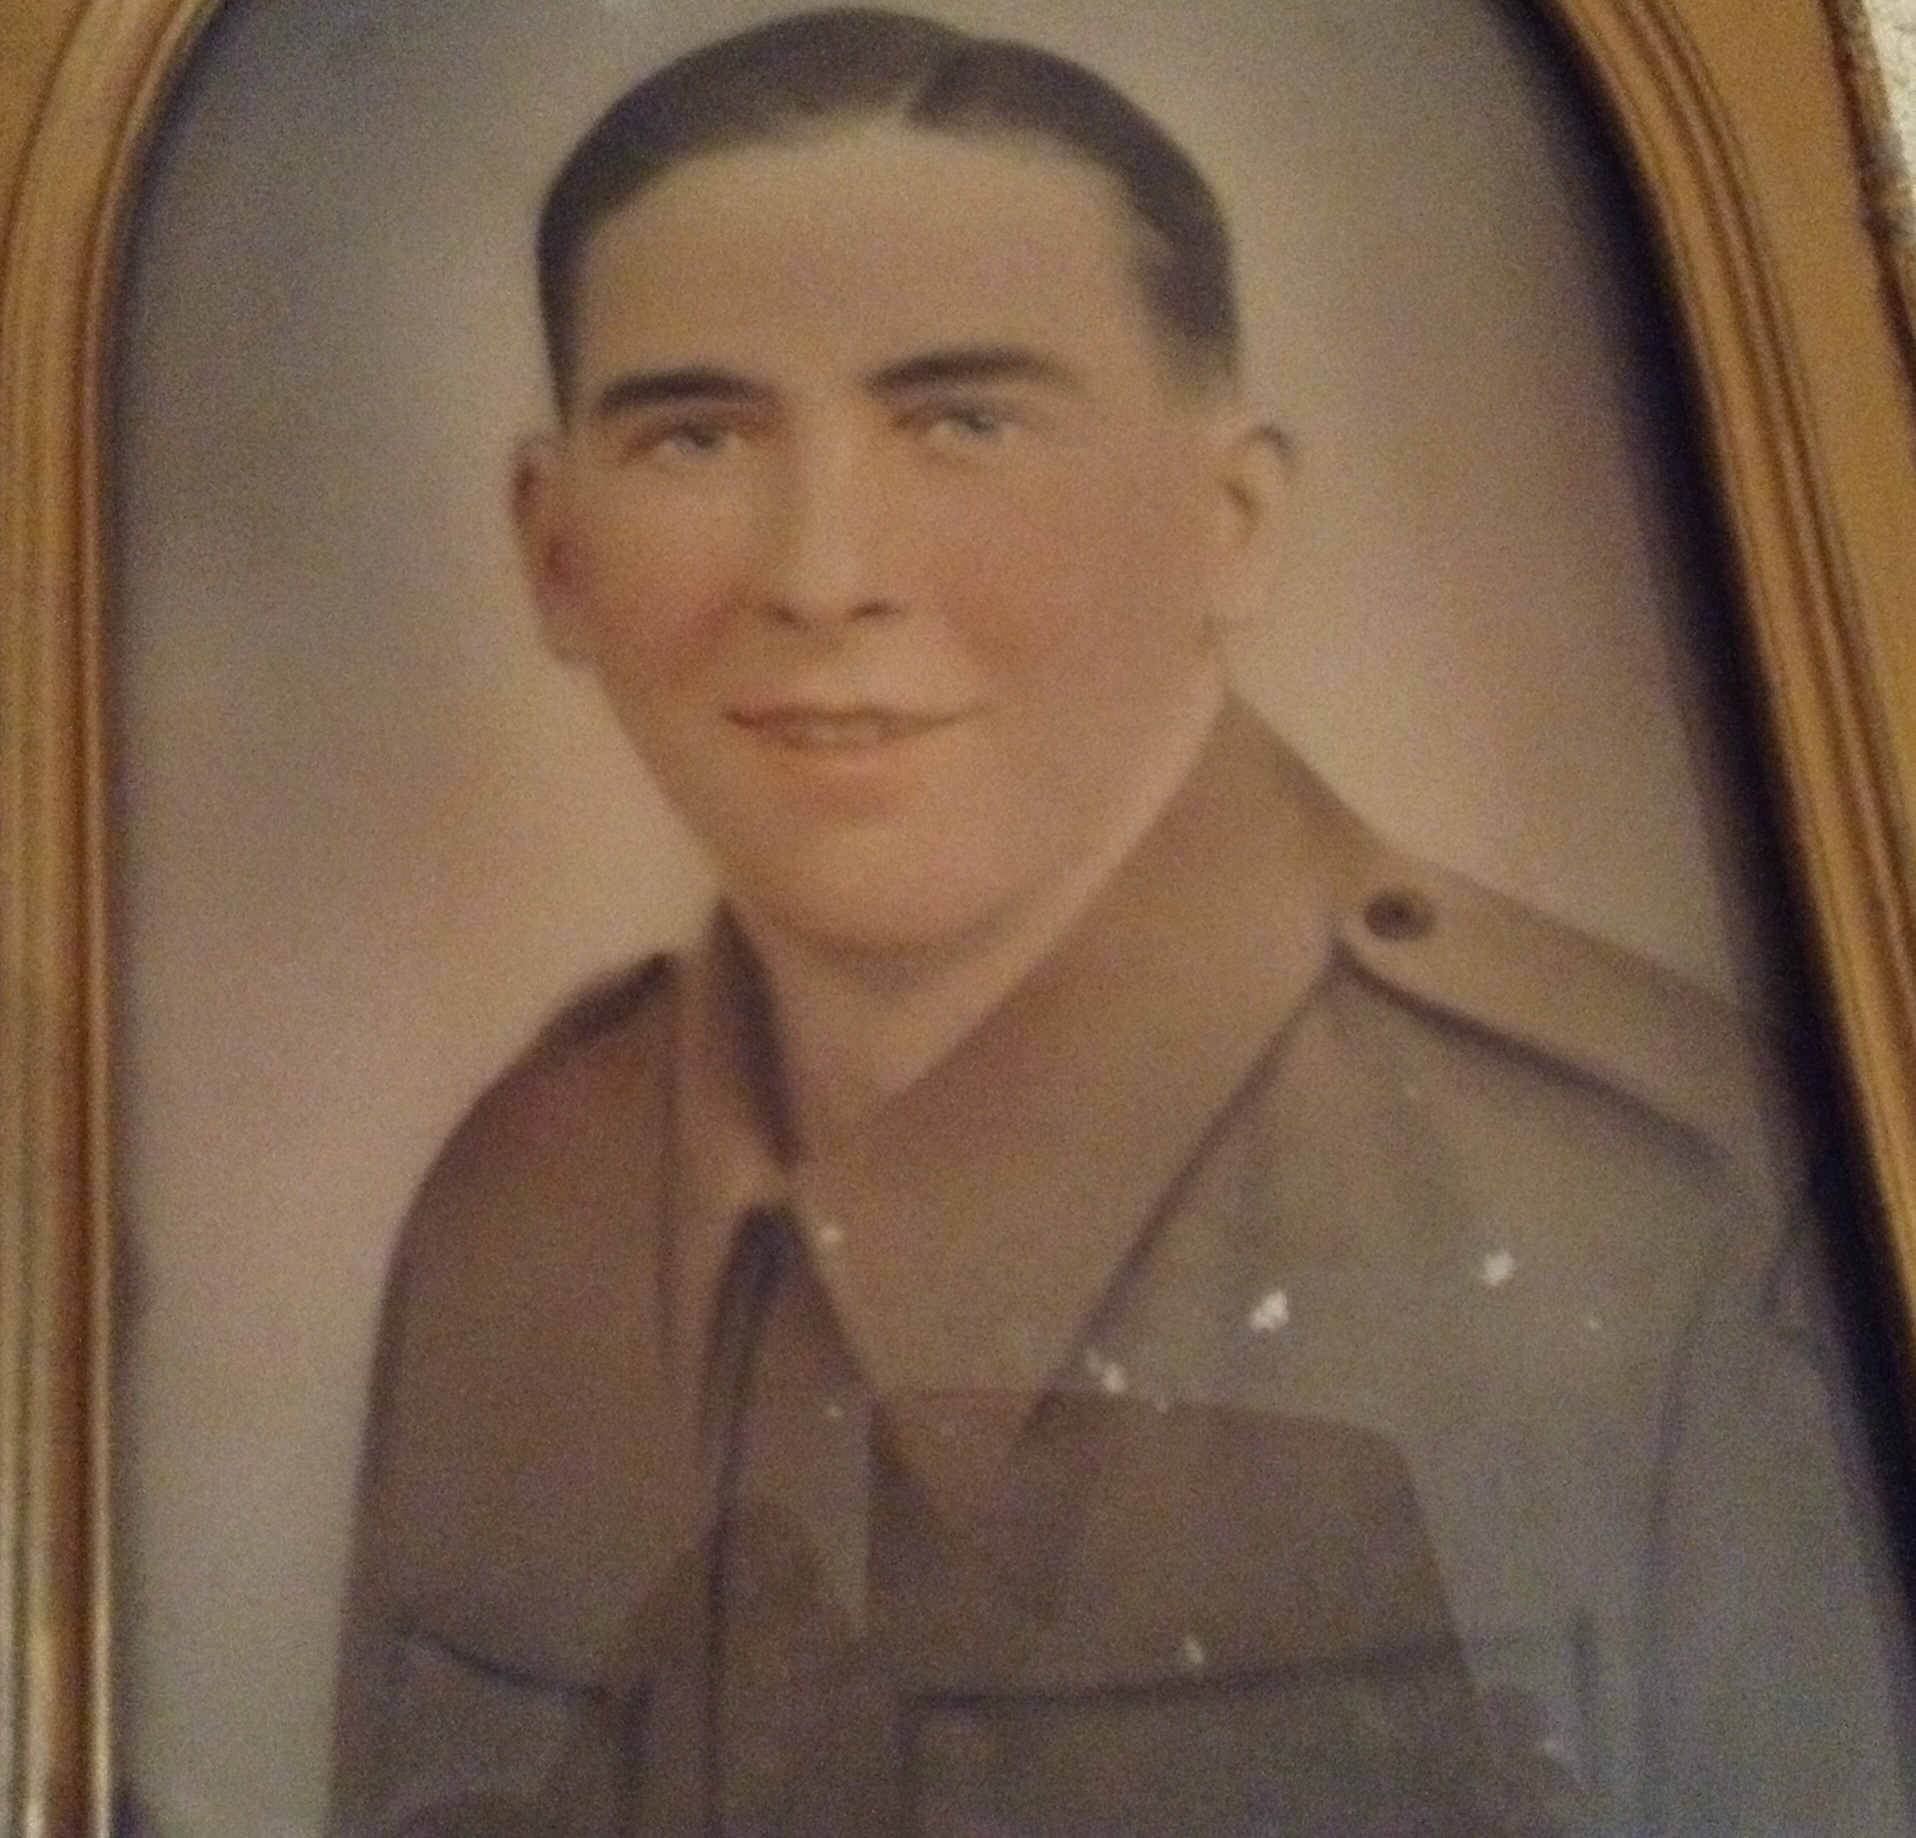 Photo of William Edward Boynett– Husband to May, father to Alberta. Never forgotten.